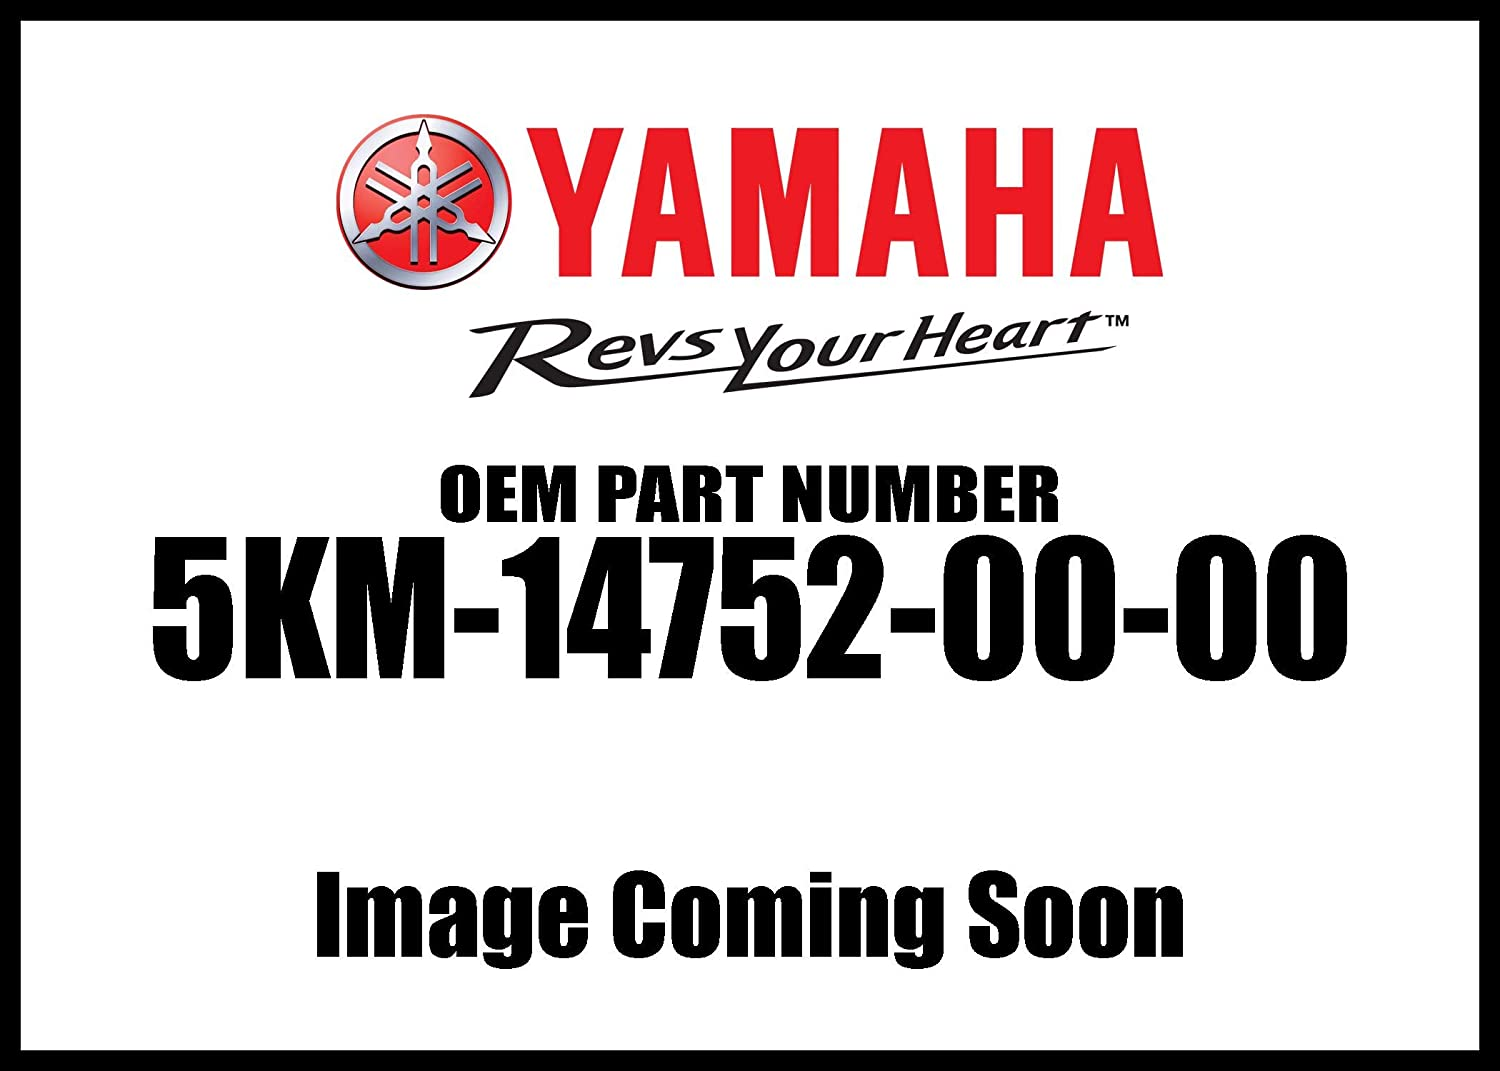 Yamaha 5KM147520000 Exhaust Outlet Pipe